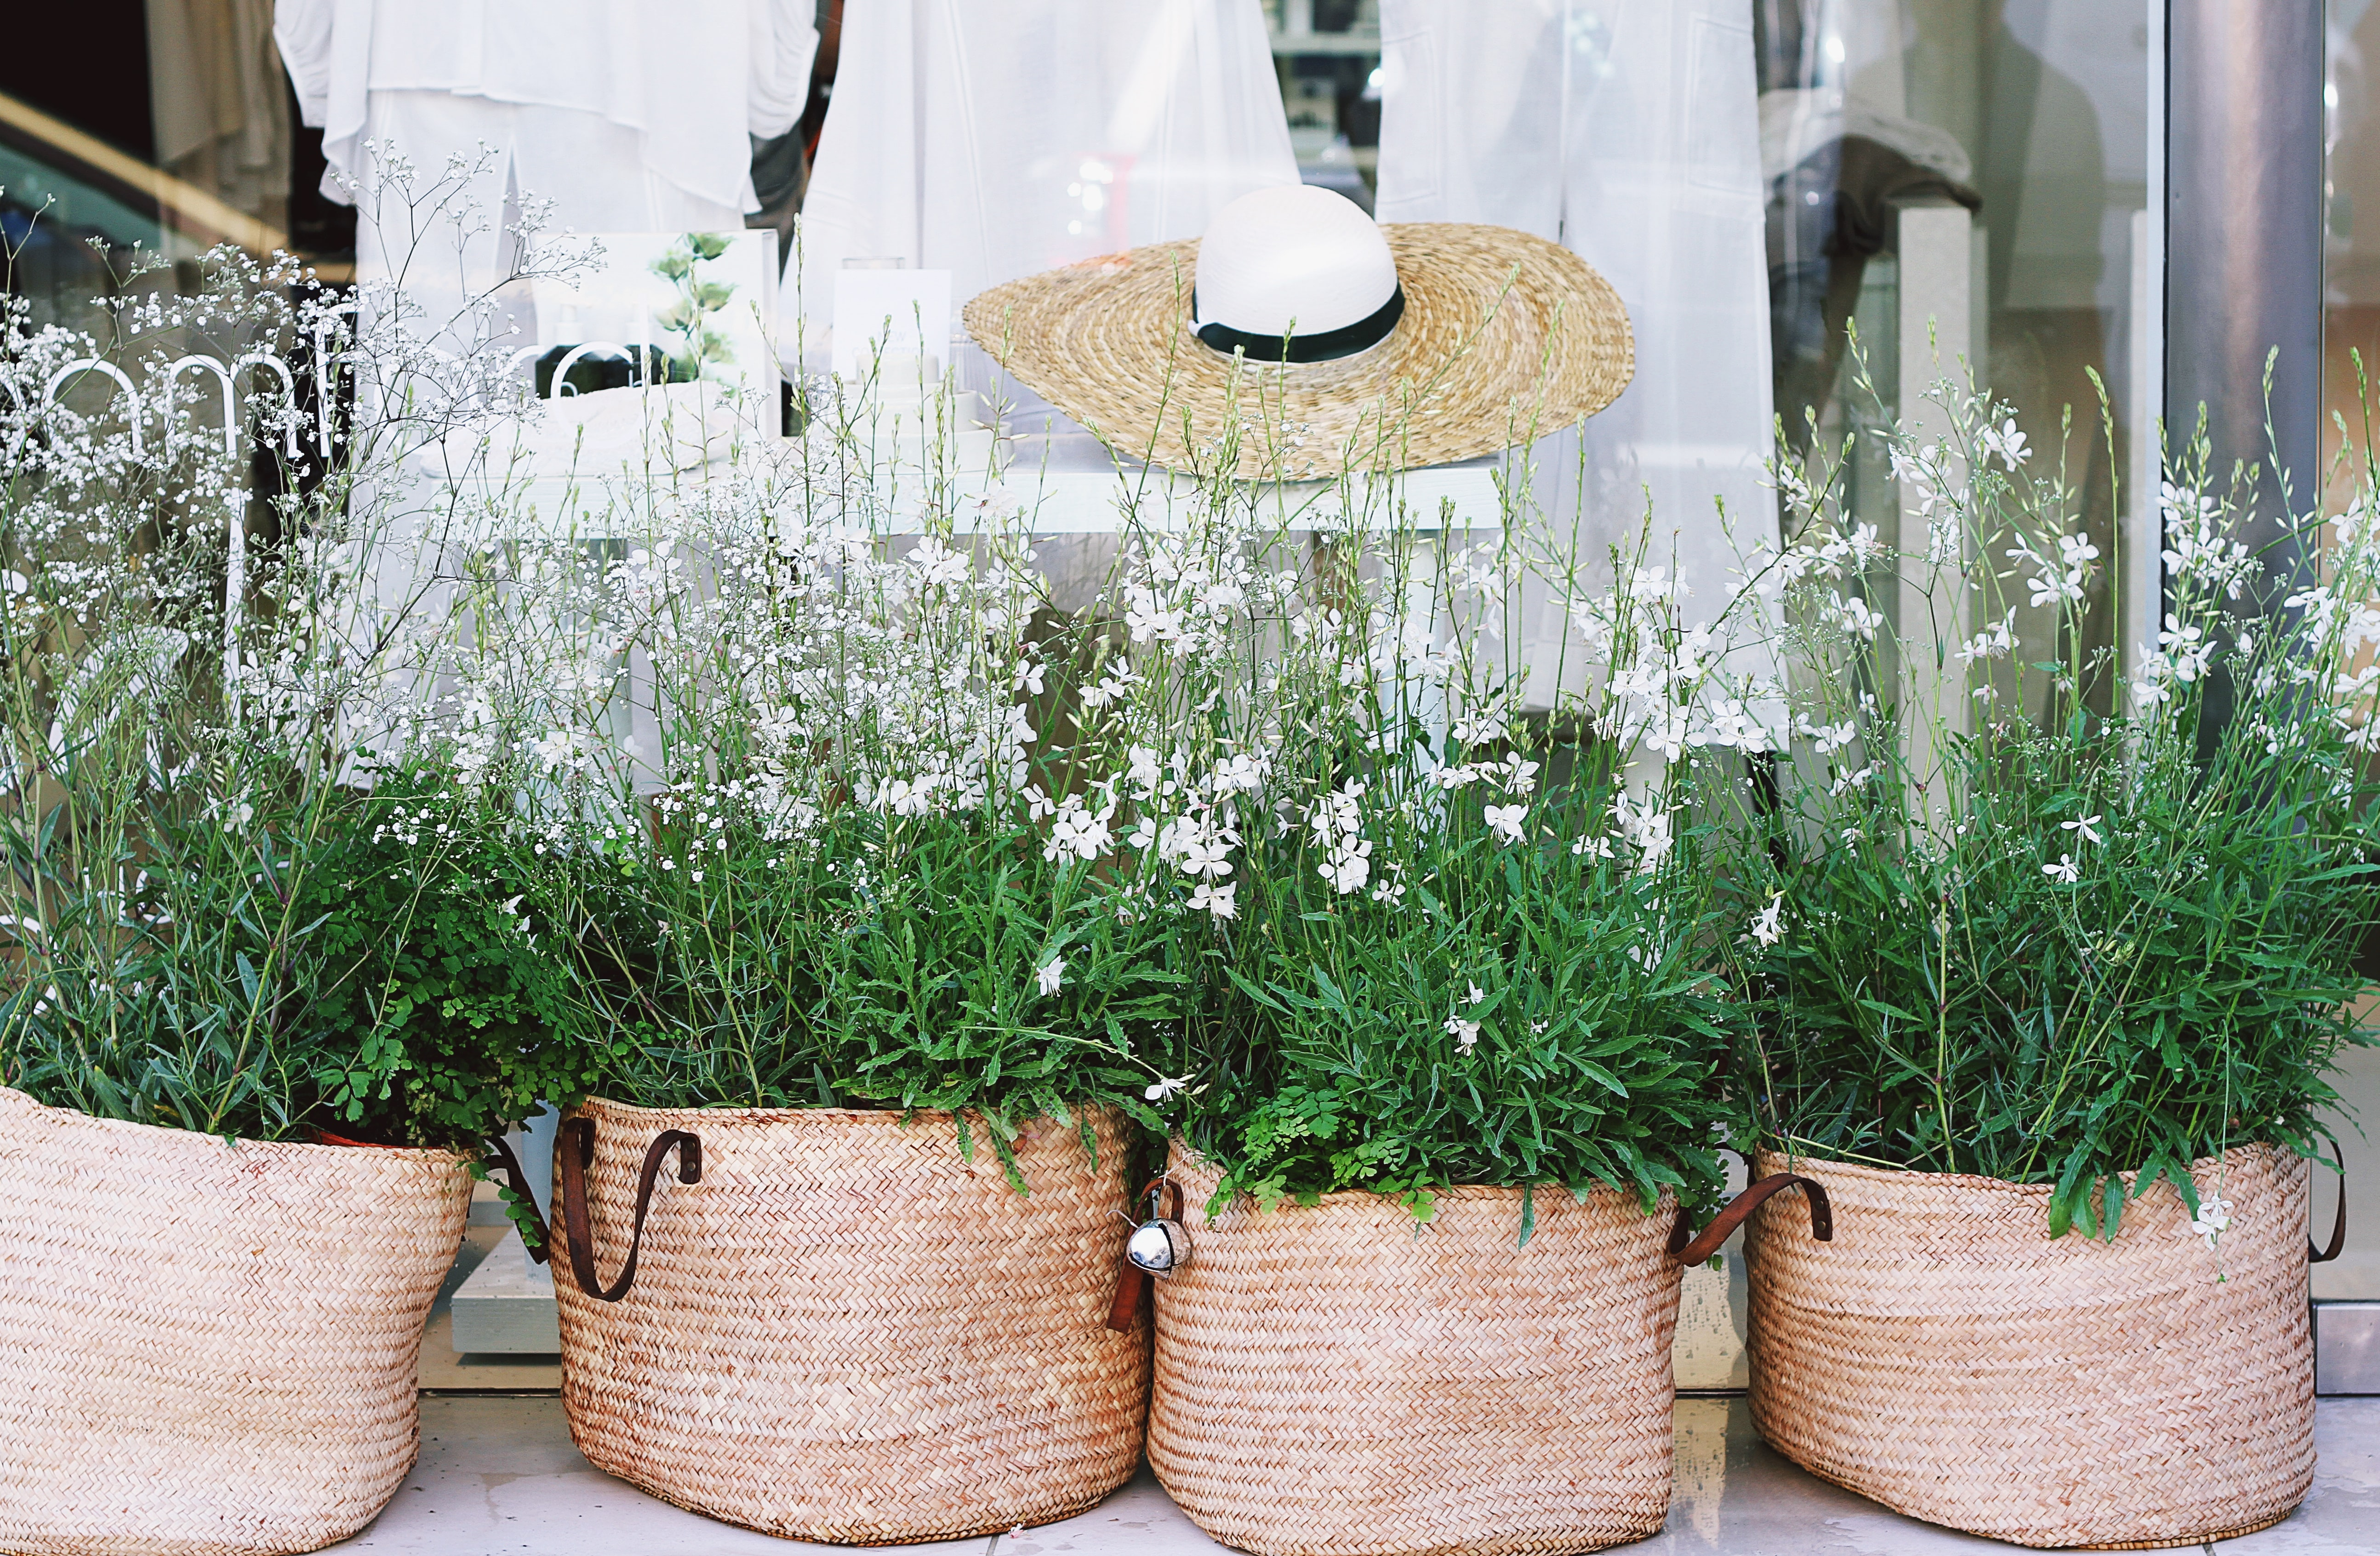 Small white flowers with rich green leaves planted in wicker bags